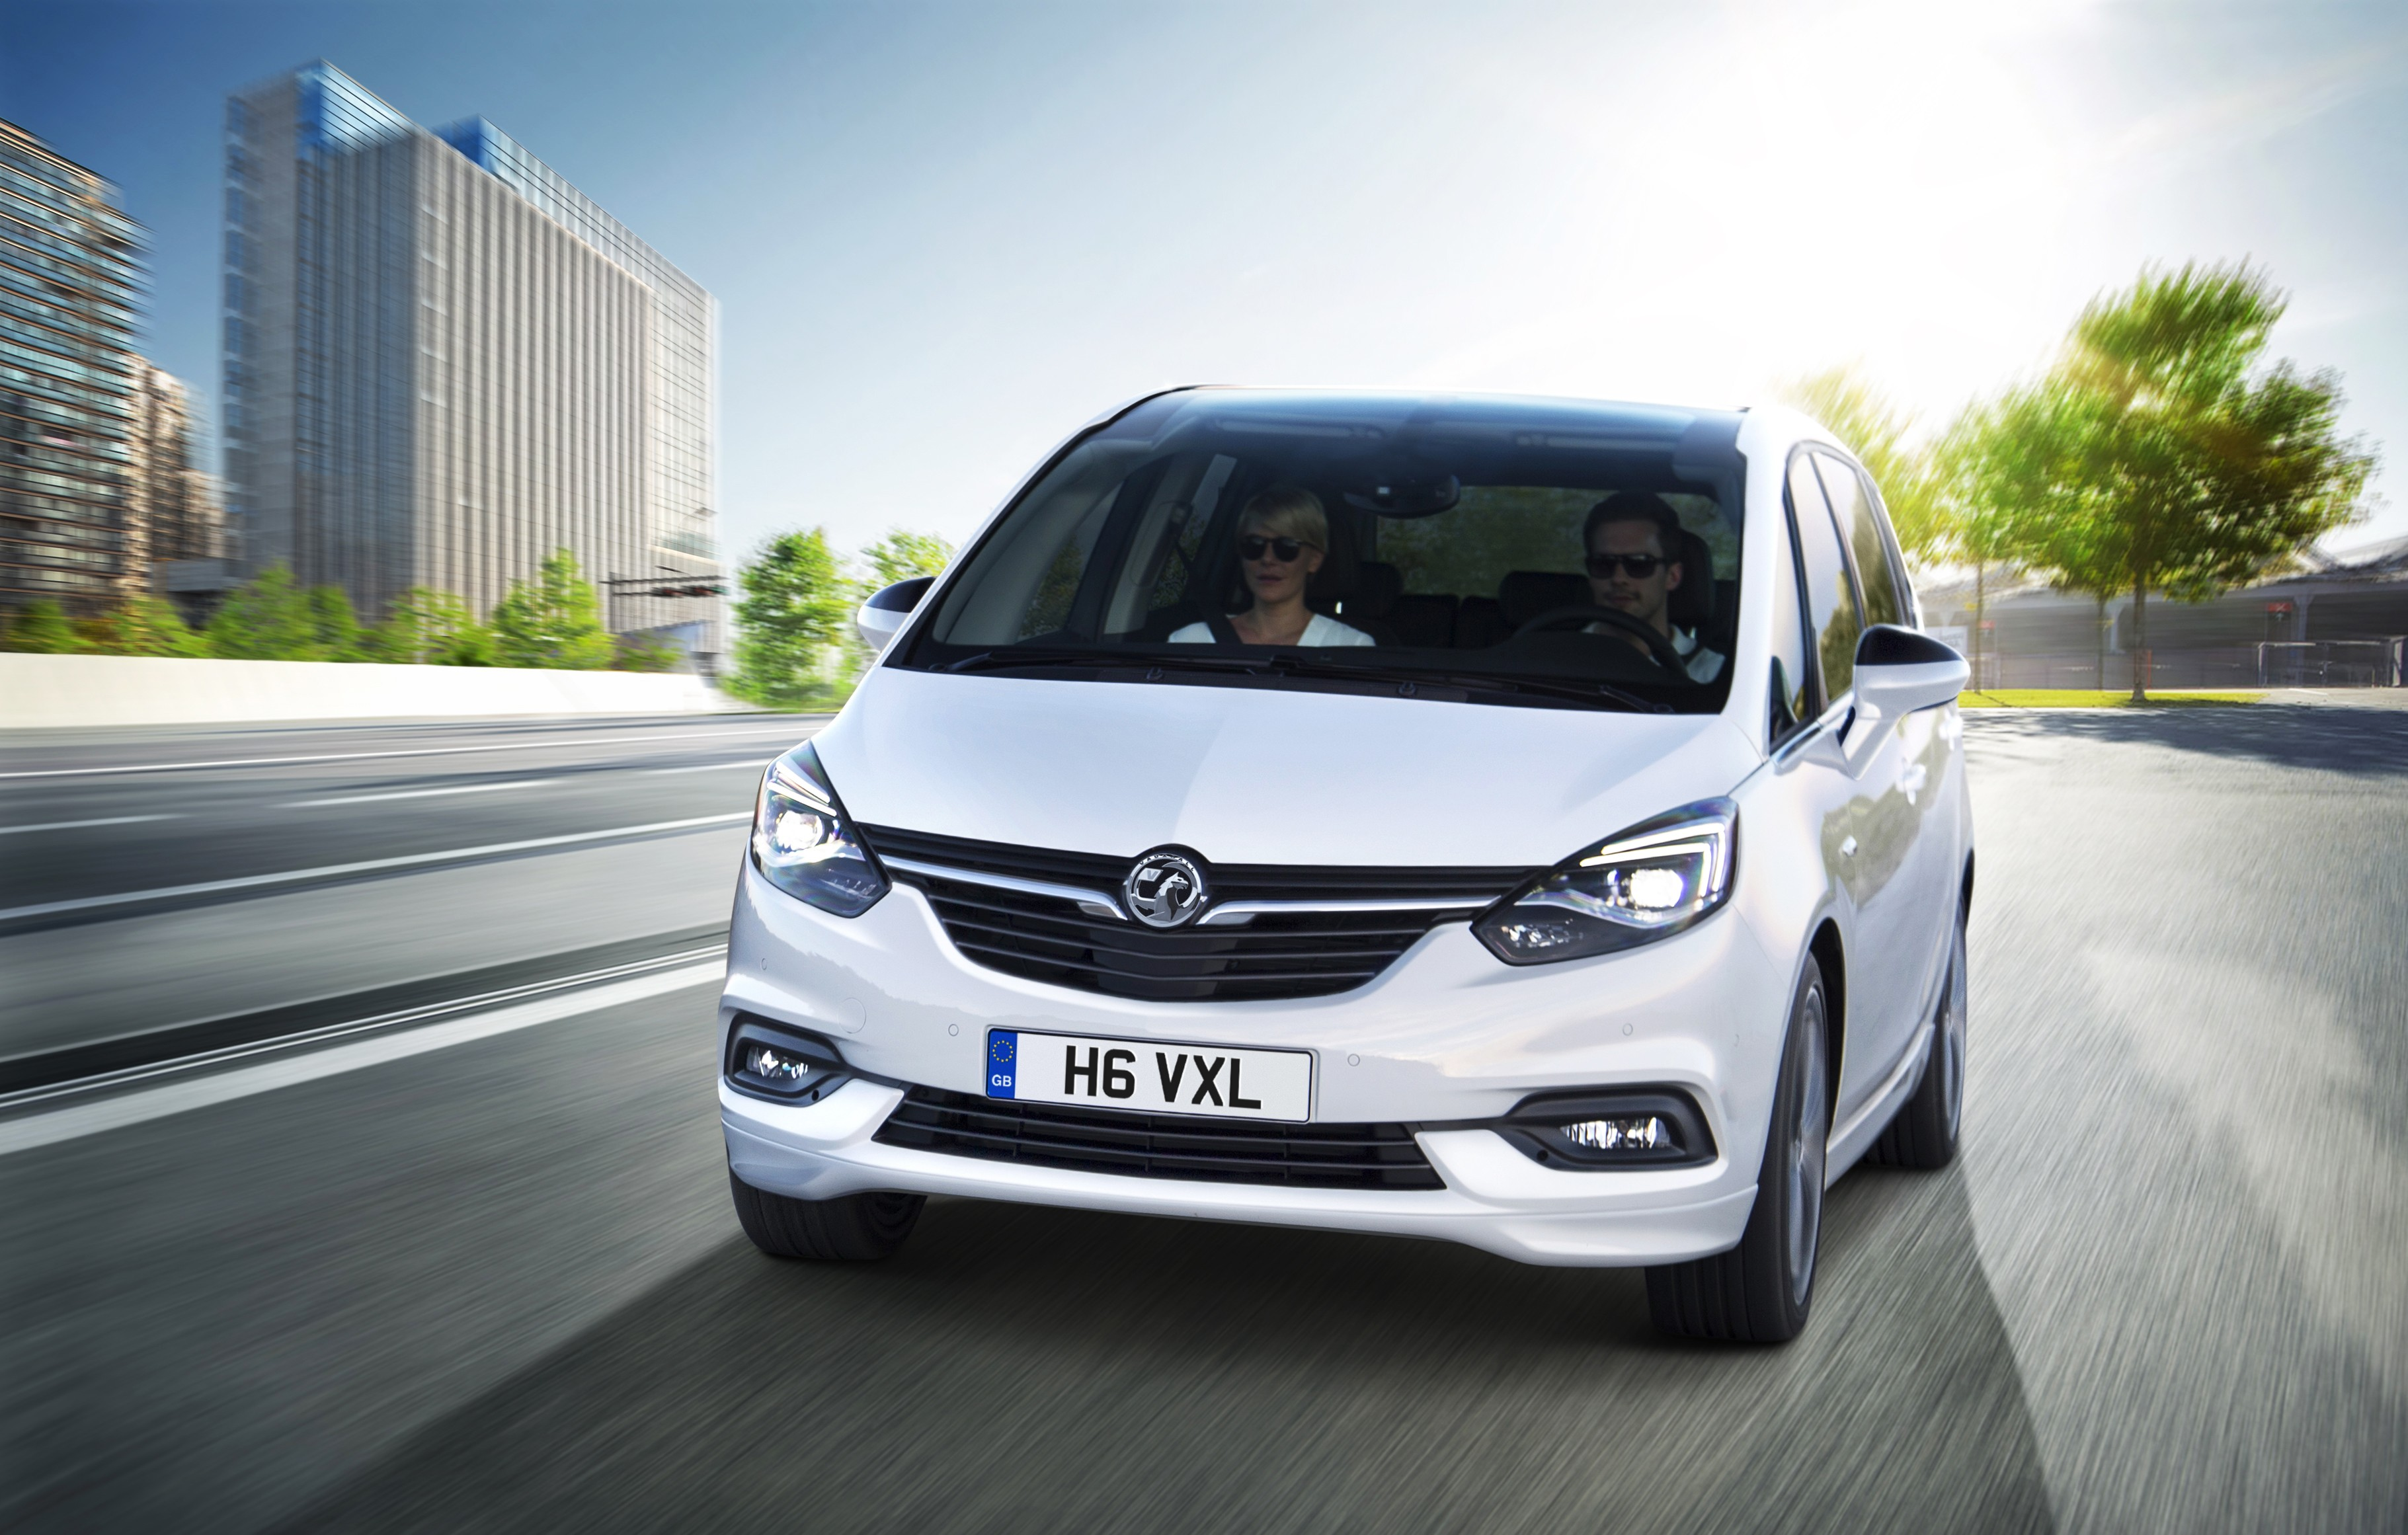 2017 vauxhall zafira tourer prepares to roll into british dealer lots autoevolution. Black Bedroom Furniture Sets. Home Design Ideas